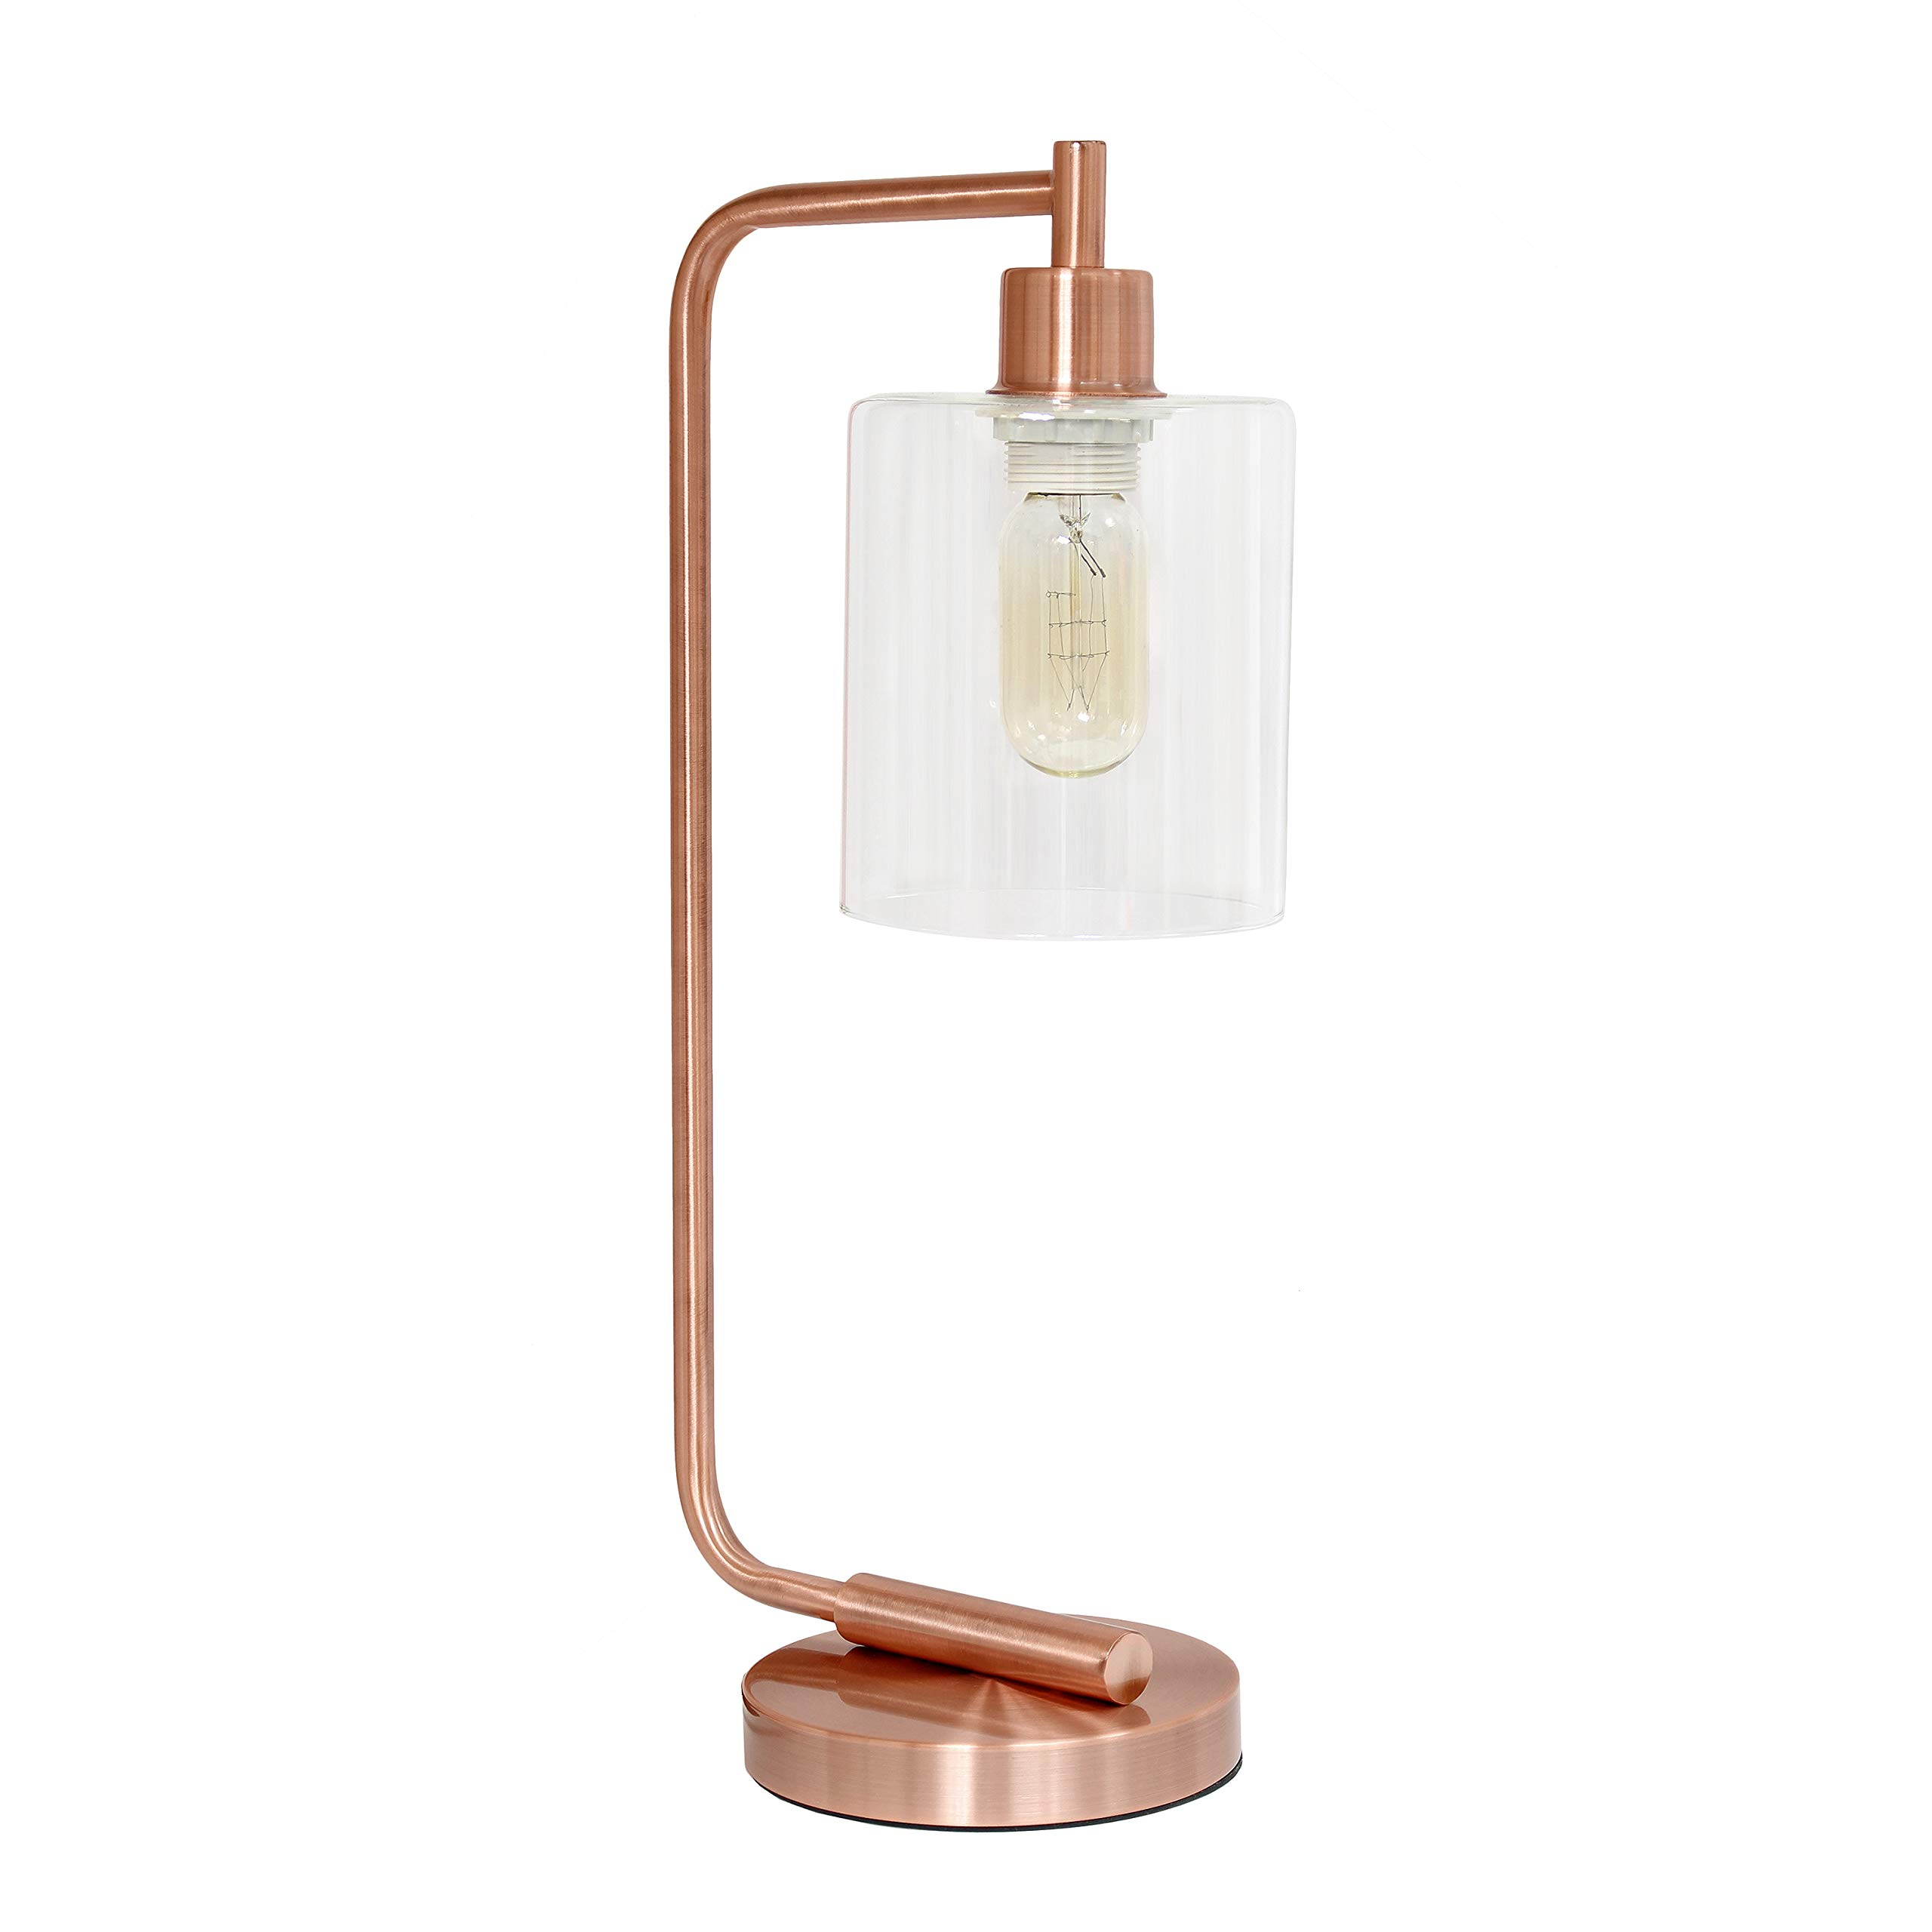 Simple Designs LD1036-RGD Bronson Antique Style Industrial Iron Lantern Glass Shade Desk Lamp, Rose Gold